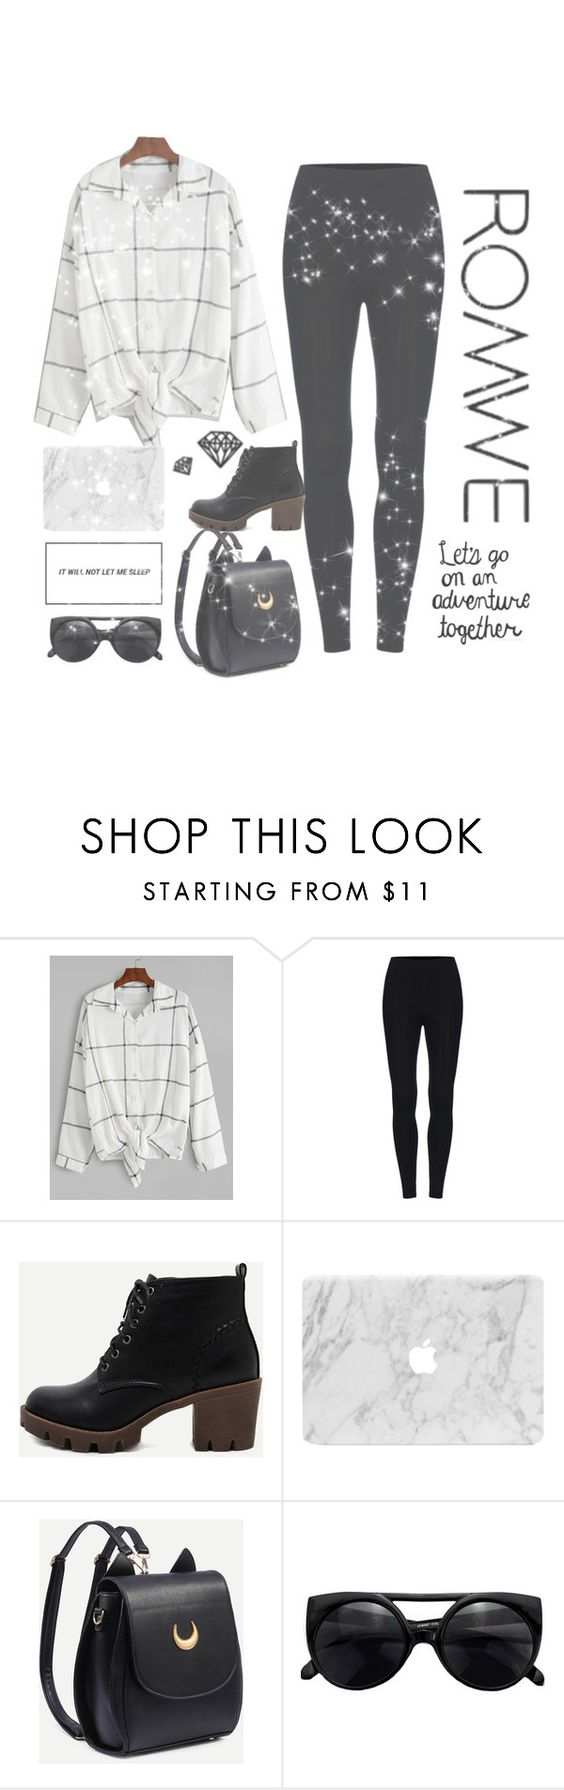 """""""Romwe"""" by beatr1zz ❤ liked on Polyvore"""